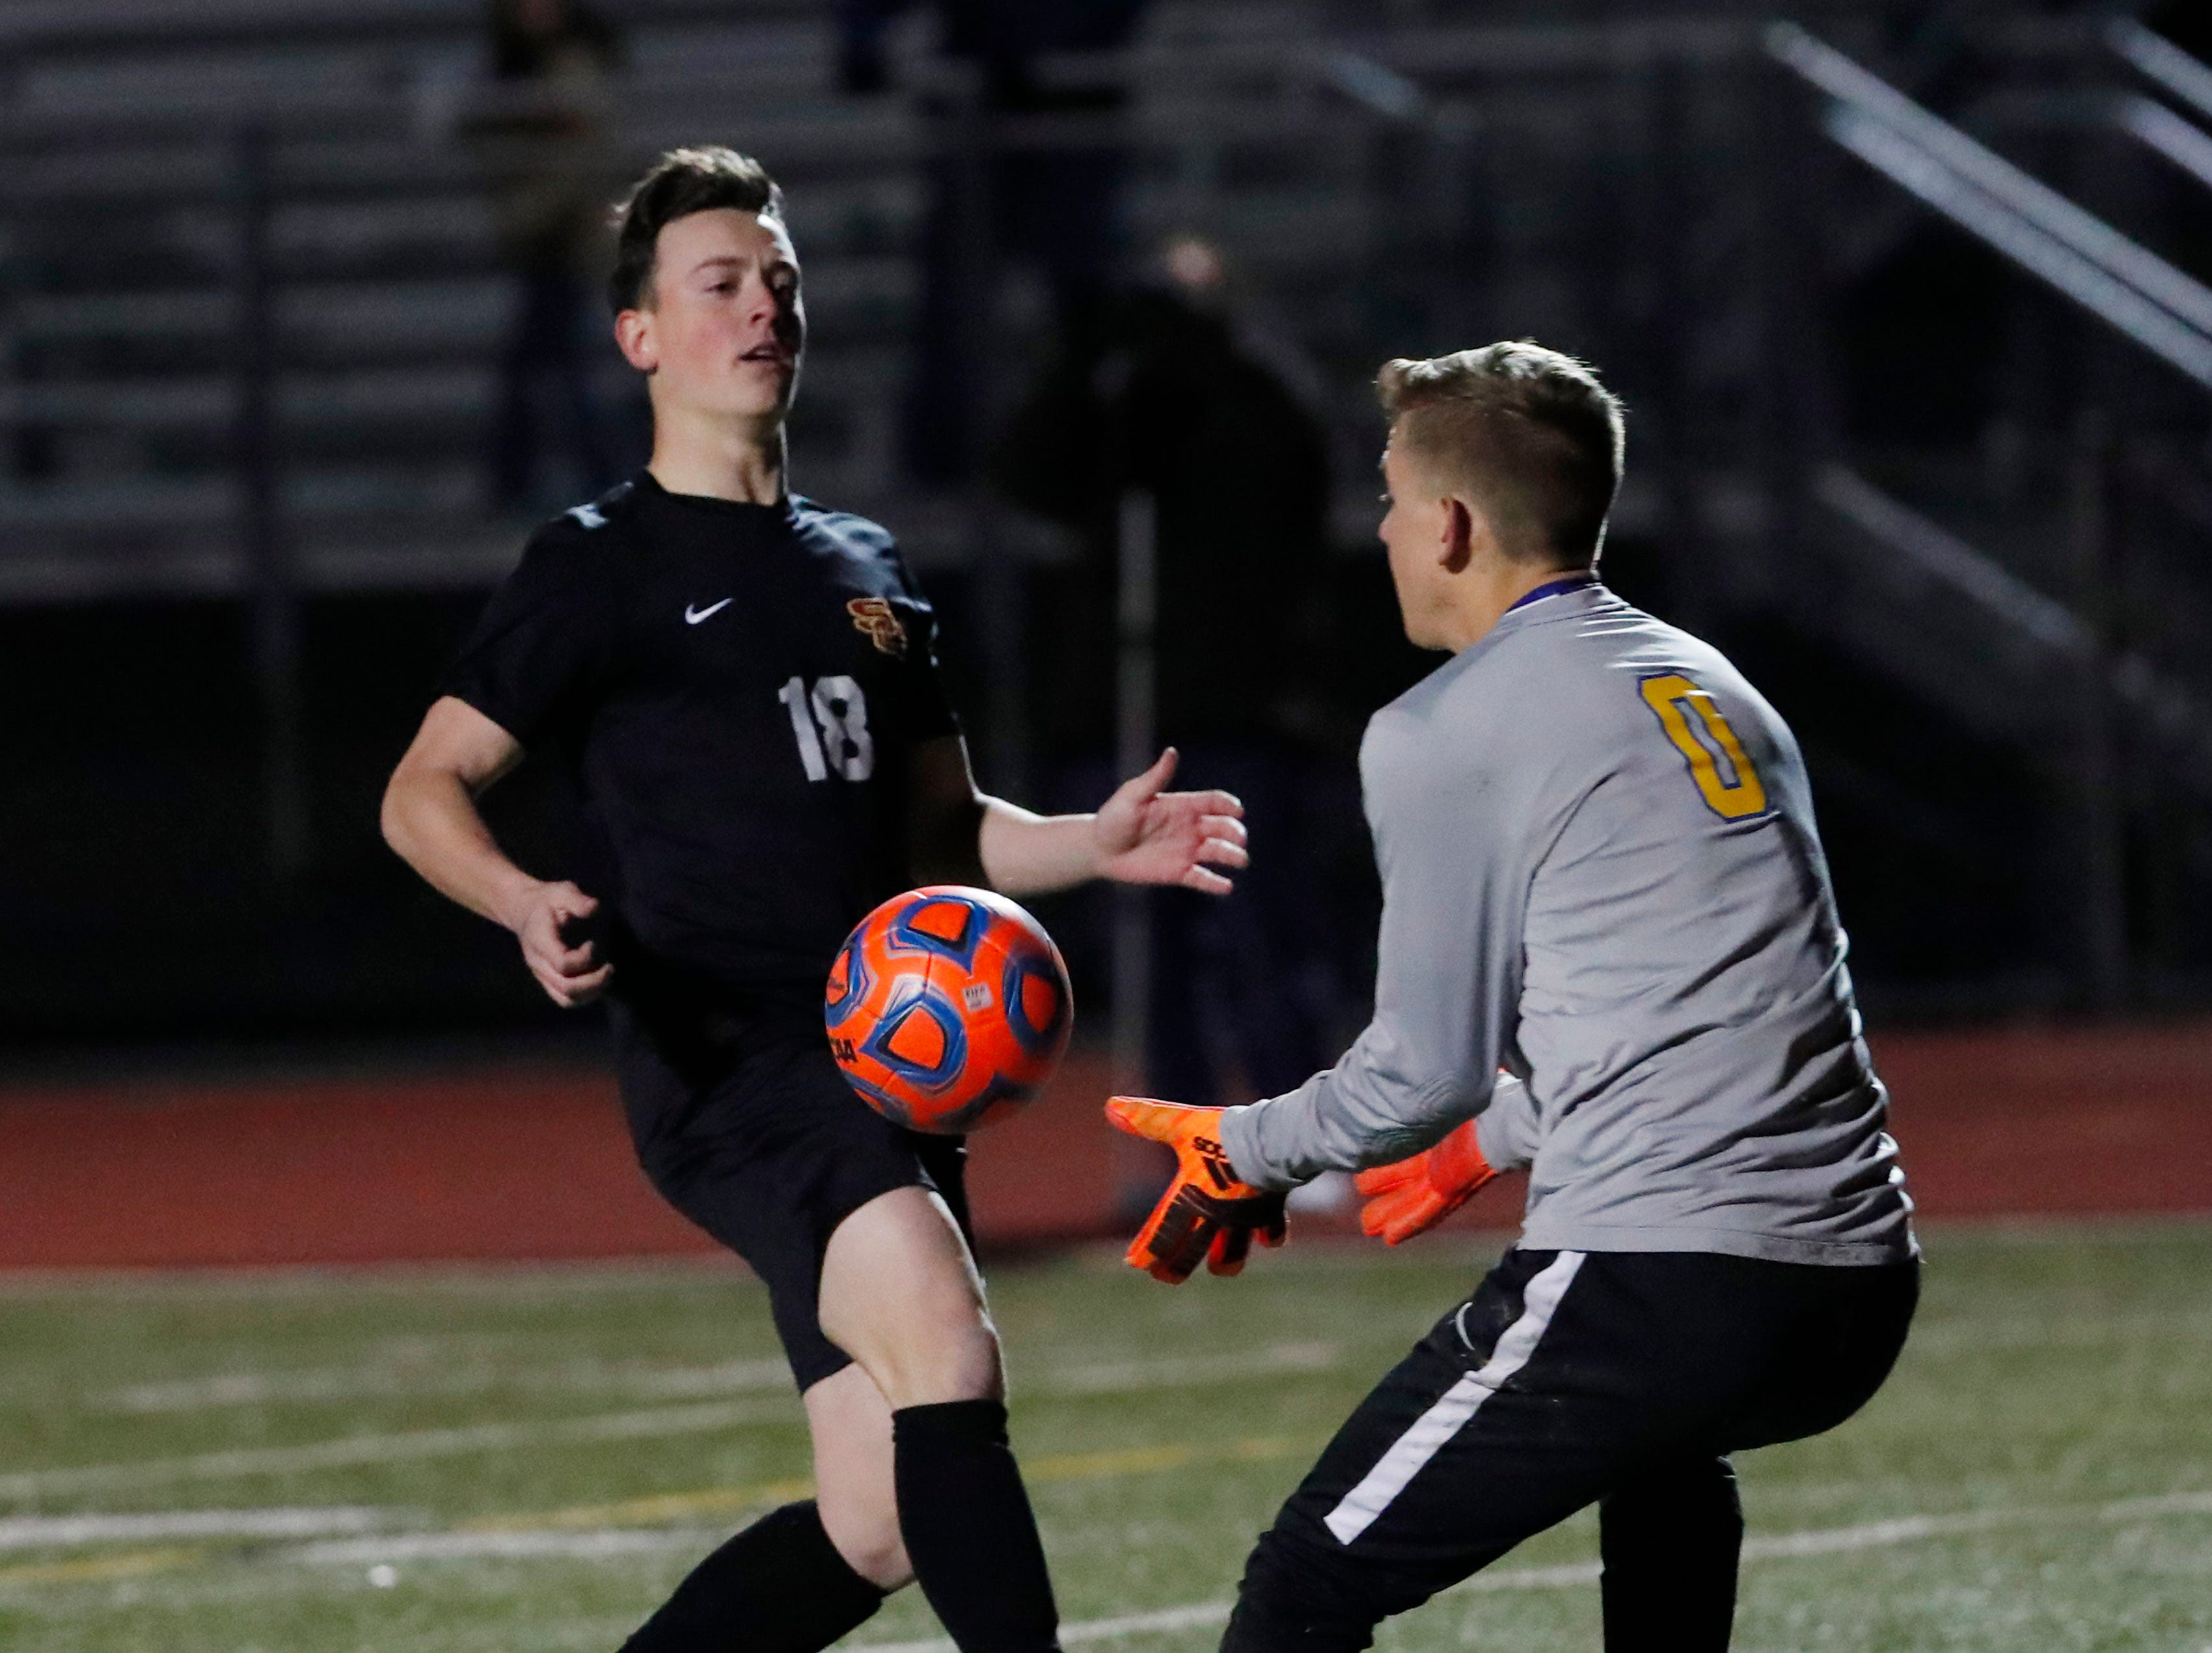 Prescott goal keeper Ryan Peeples grabs the ball while pressured by Salpointe's Tony Villella (18) during the Boys 4A State Championship soccer game in Gilbert Feb. 19, 2019.